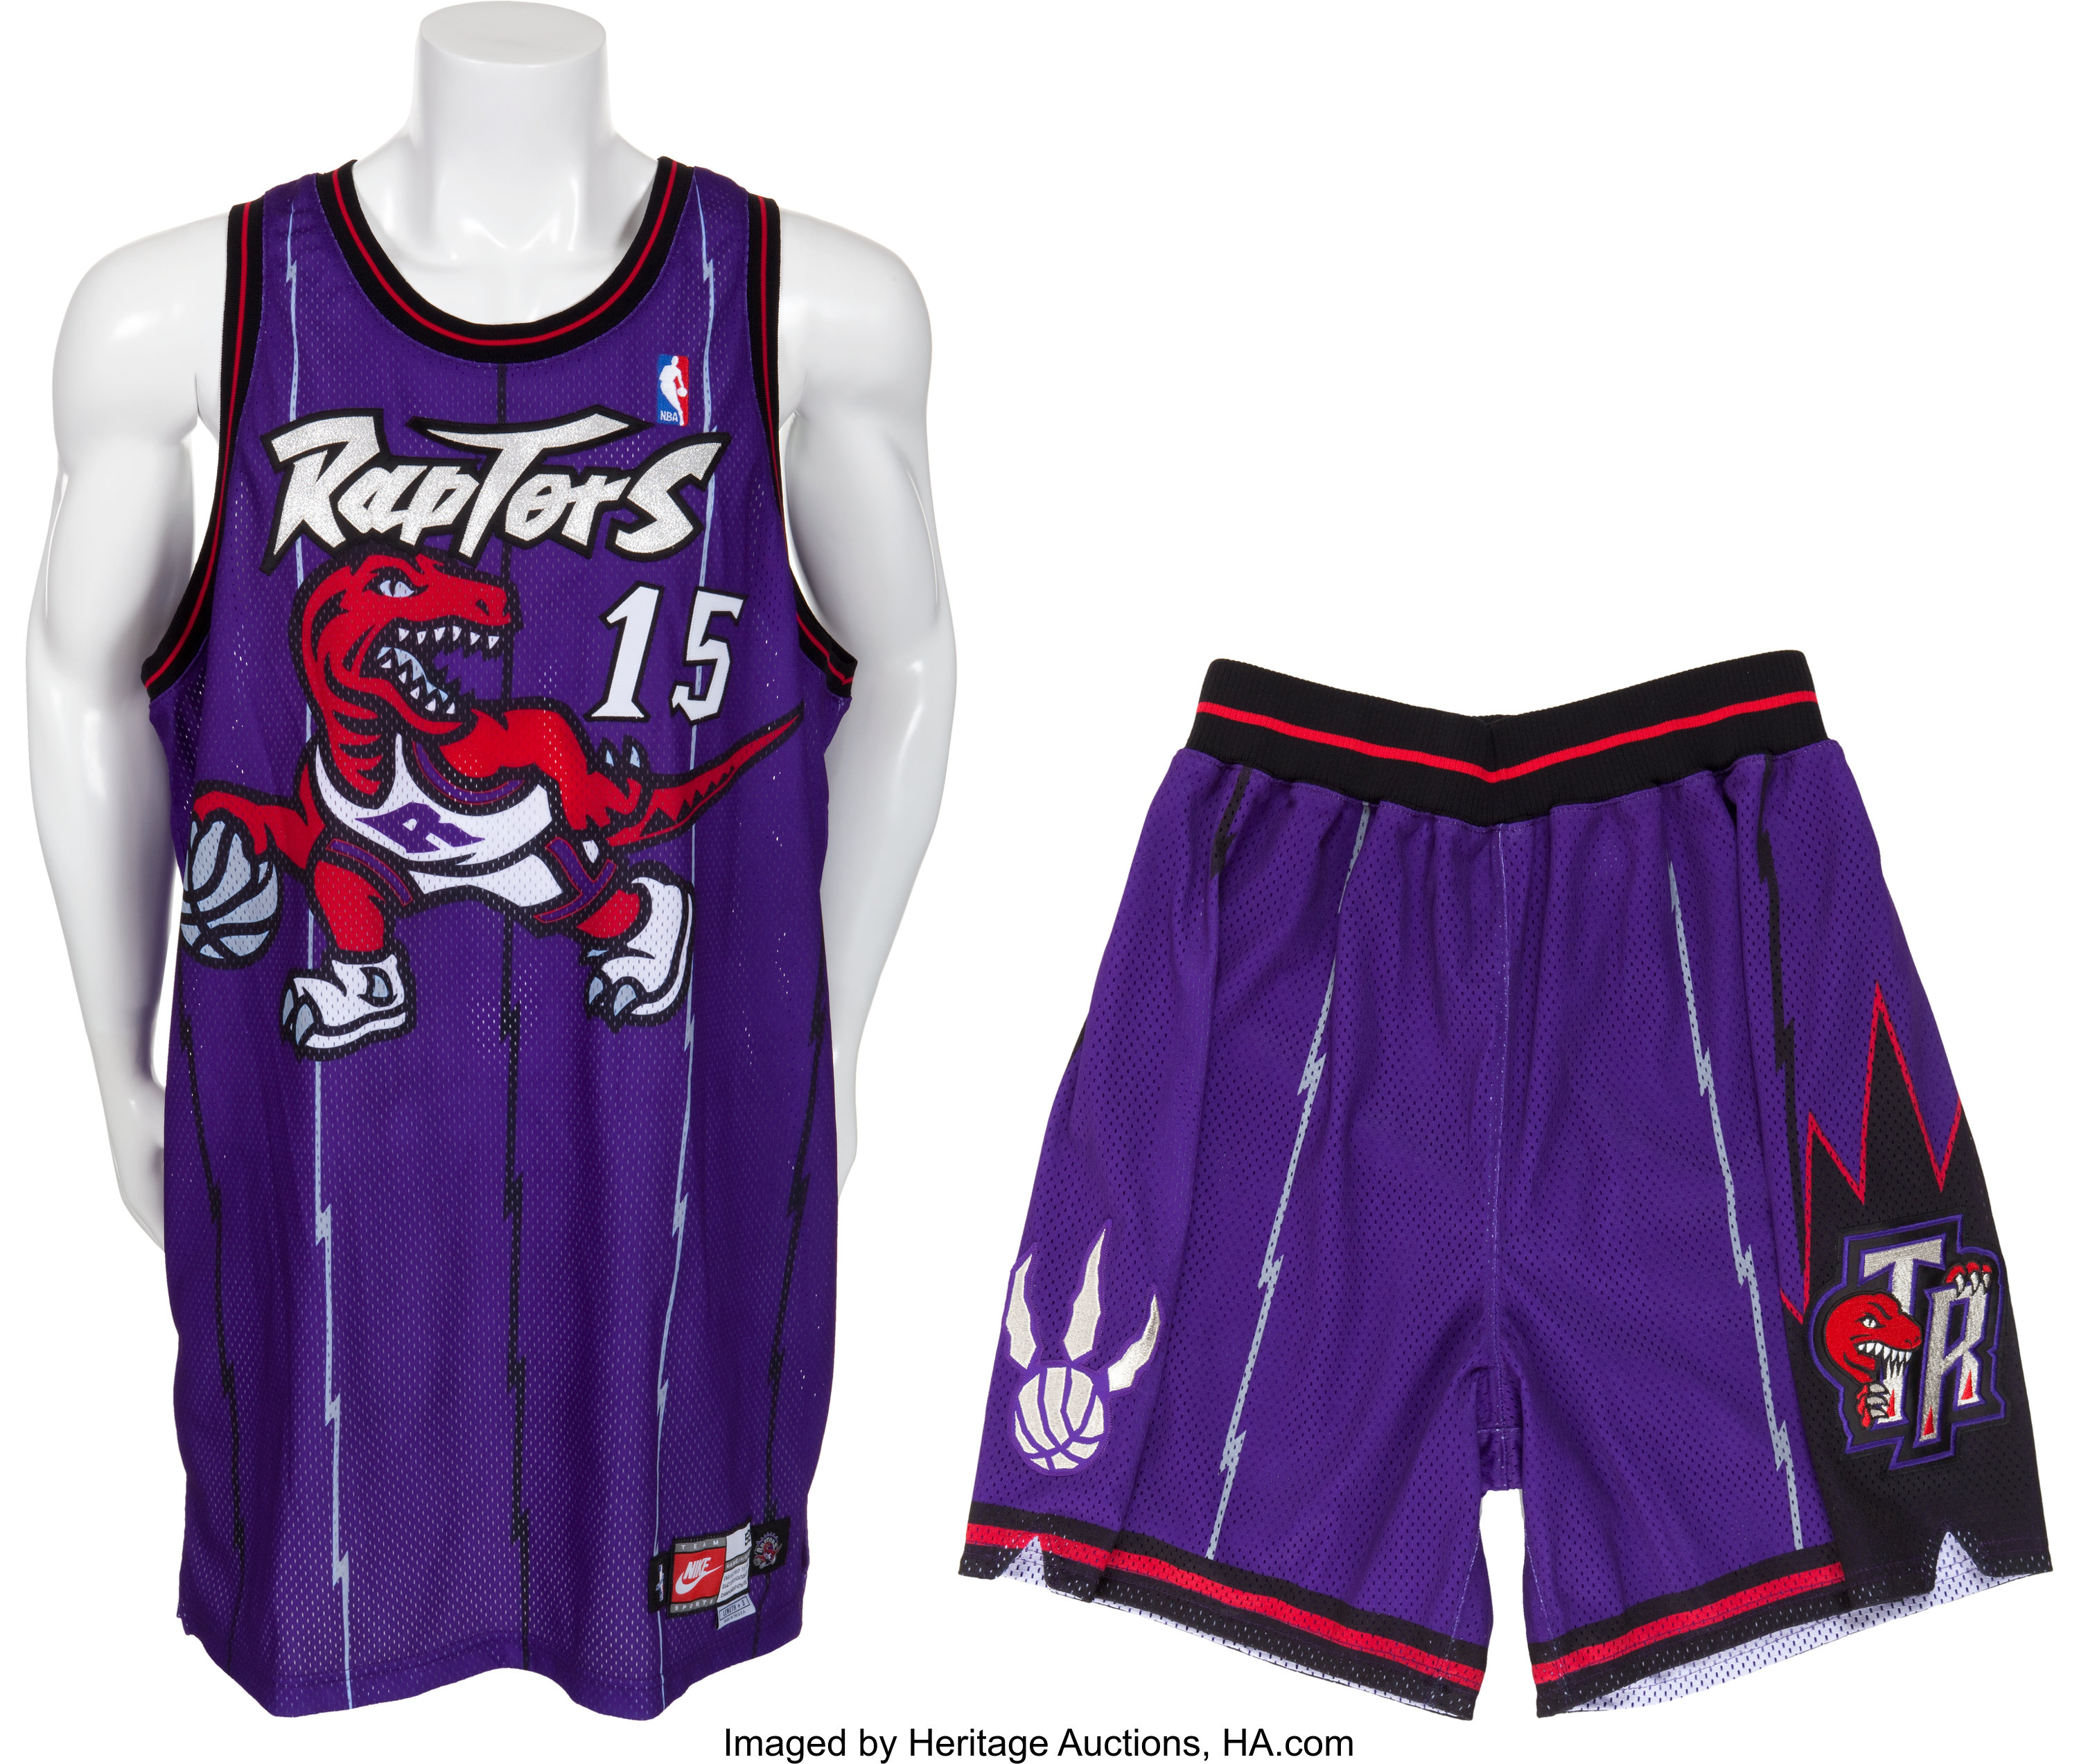 online store 2fc68 9a9cf 1998-99 Vince Carter Game Worn Toronto Raptors Jersey and ...